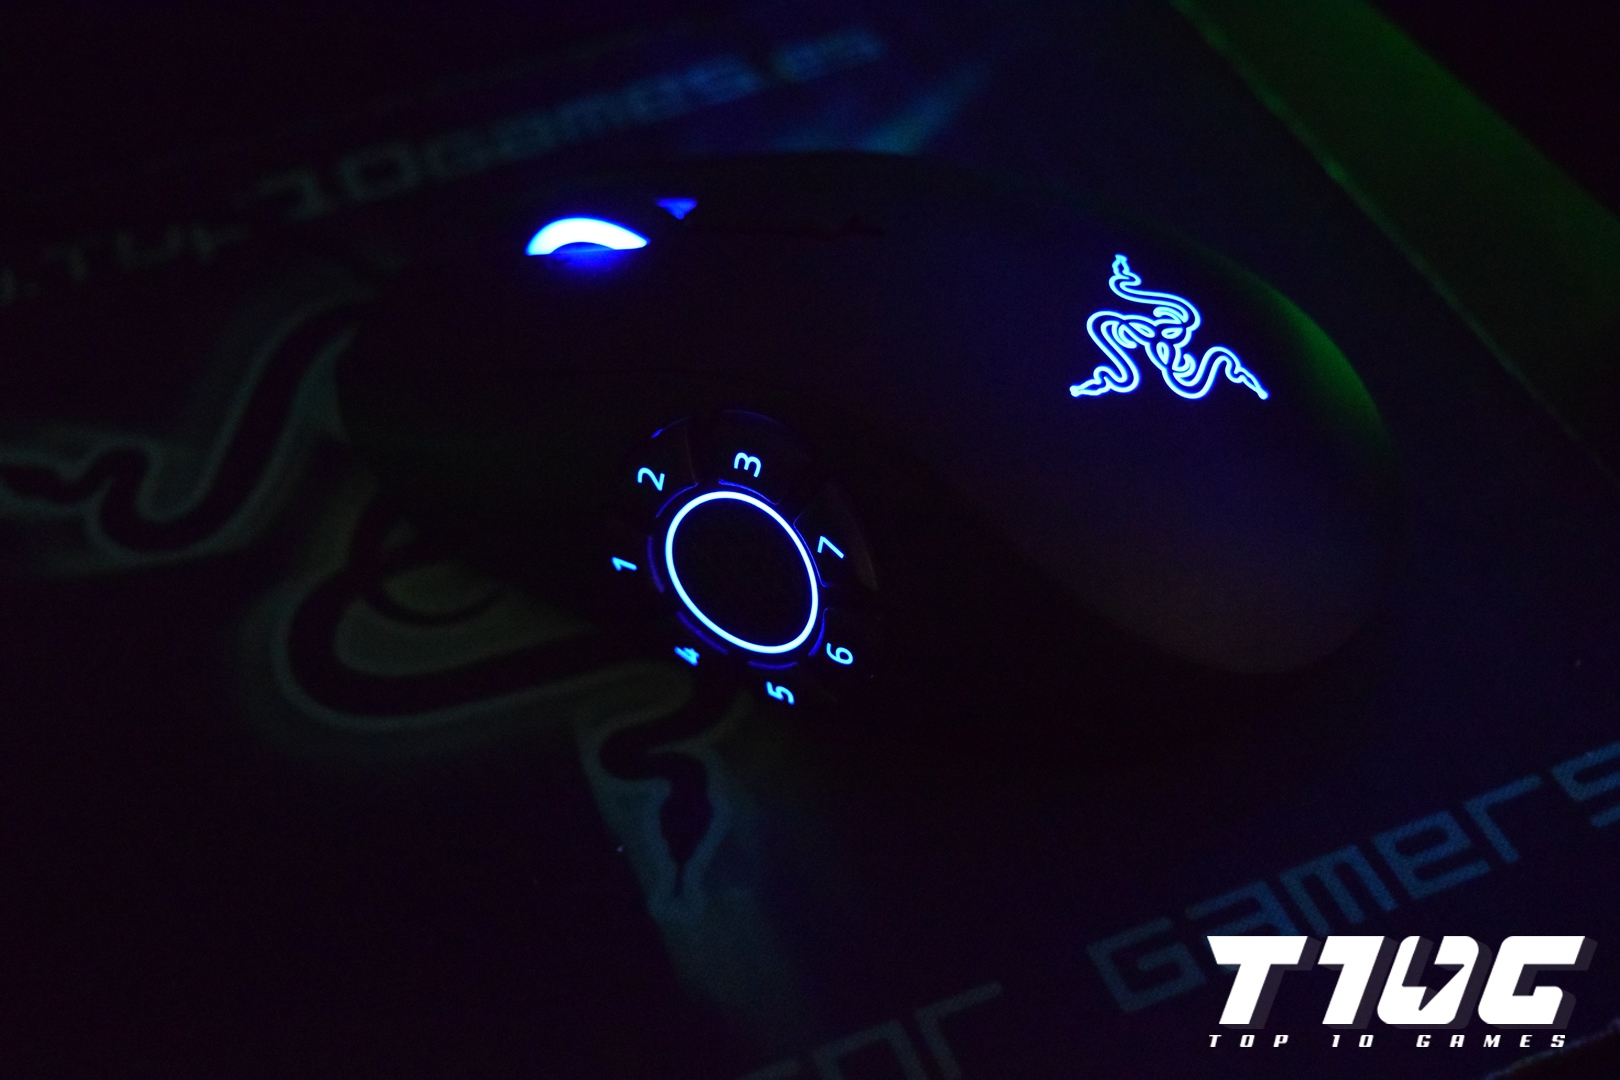 16 - Razer Naga Hex V2 - TOP10GAMES